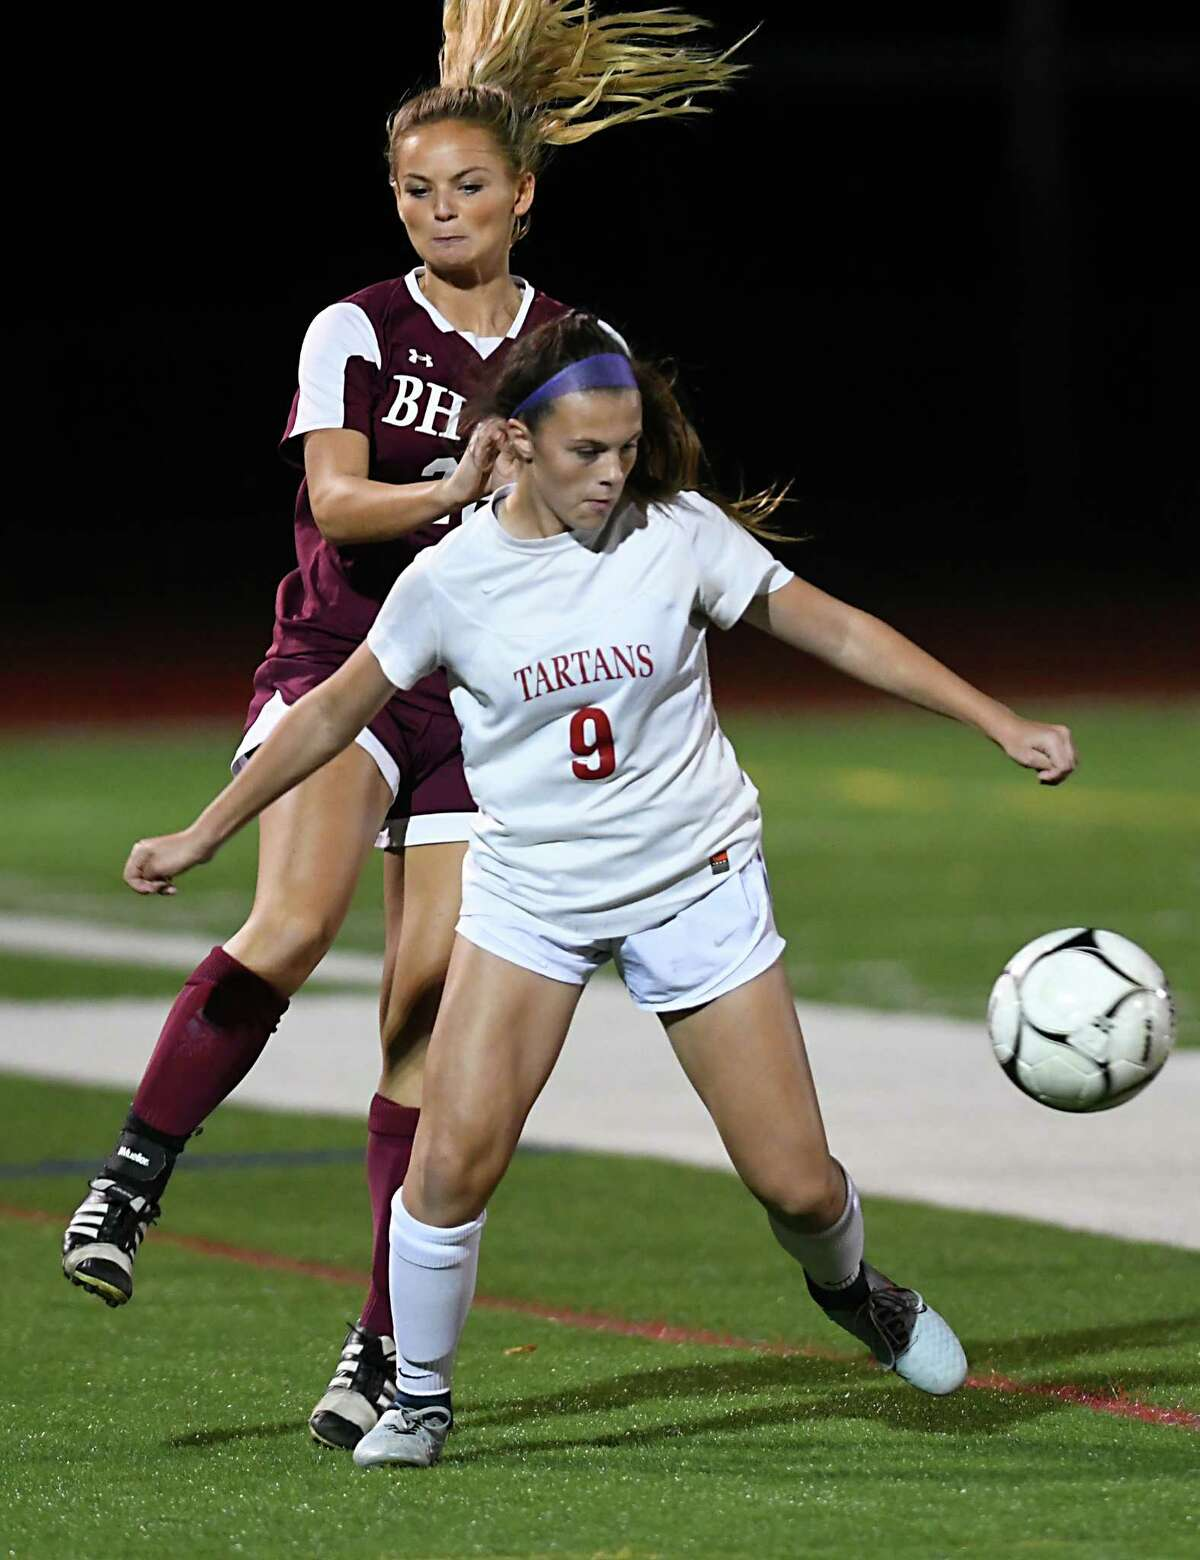 Burnt Hills' Molly Garis, left, battles for the ball with Scotia's Rylee O'Connor during a semi-final soccer game on Monday, Oct 23, 2017 in Stillwater, N.Y. (Lori Van Buren / Times Union)